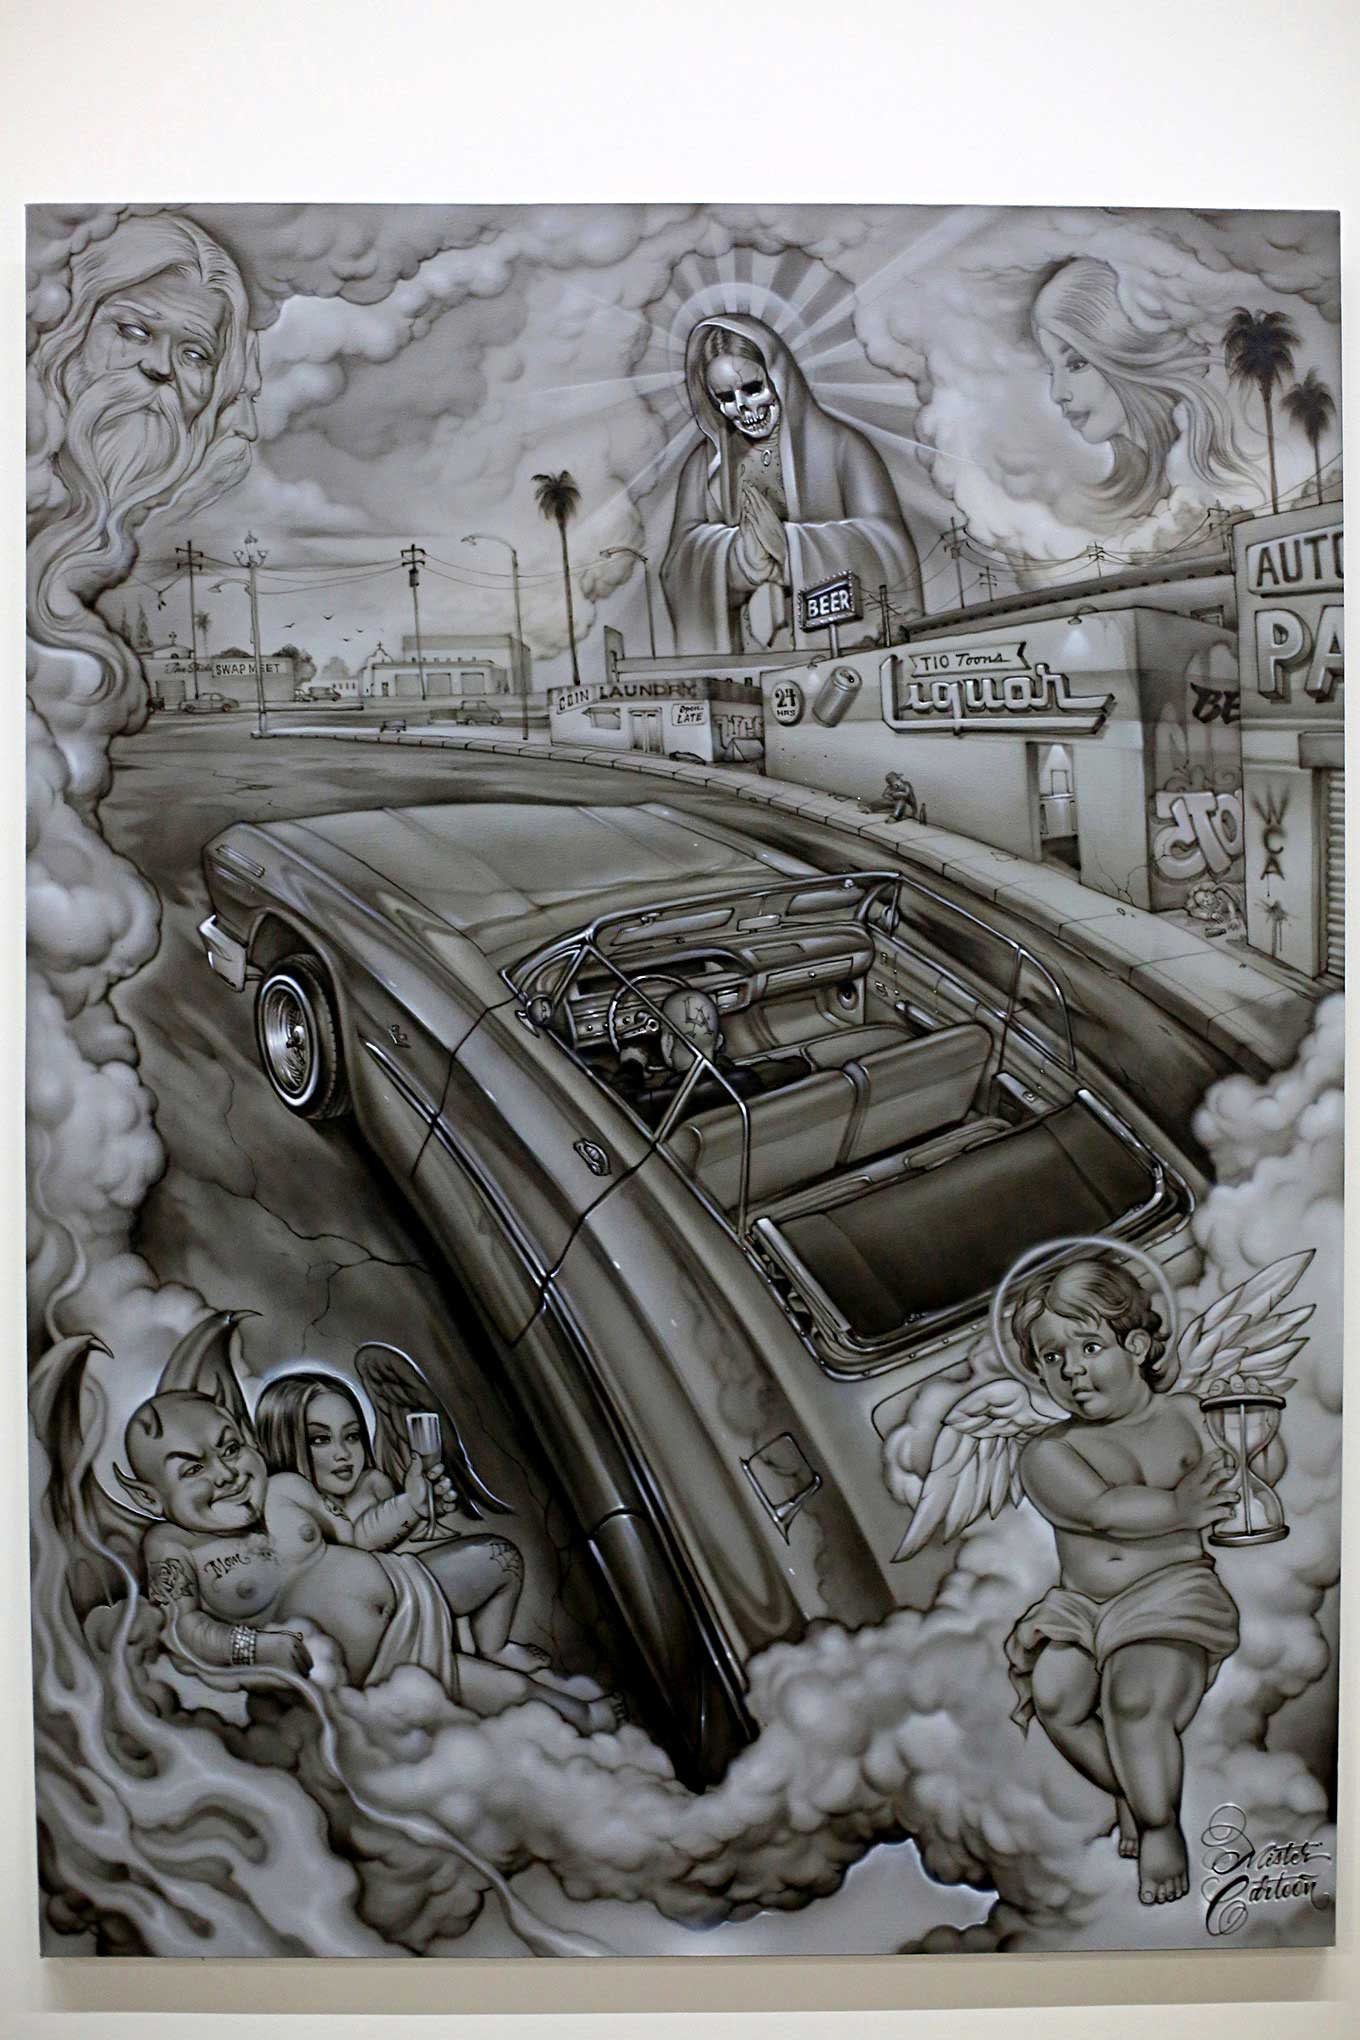 art at the peterson mister cartoon lowrider